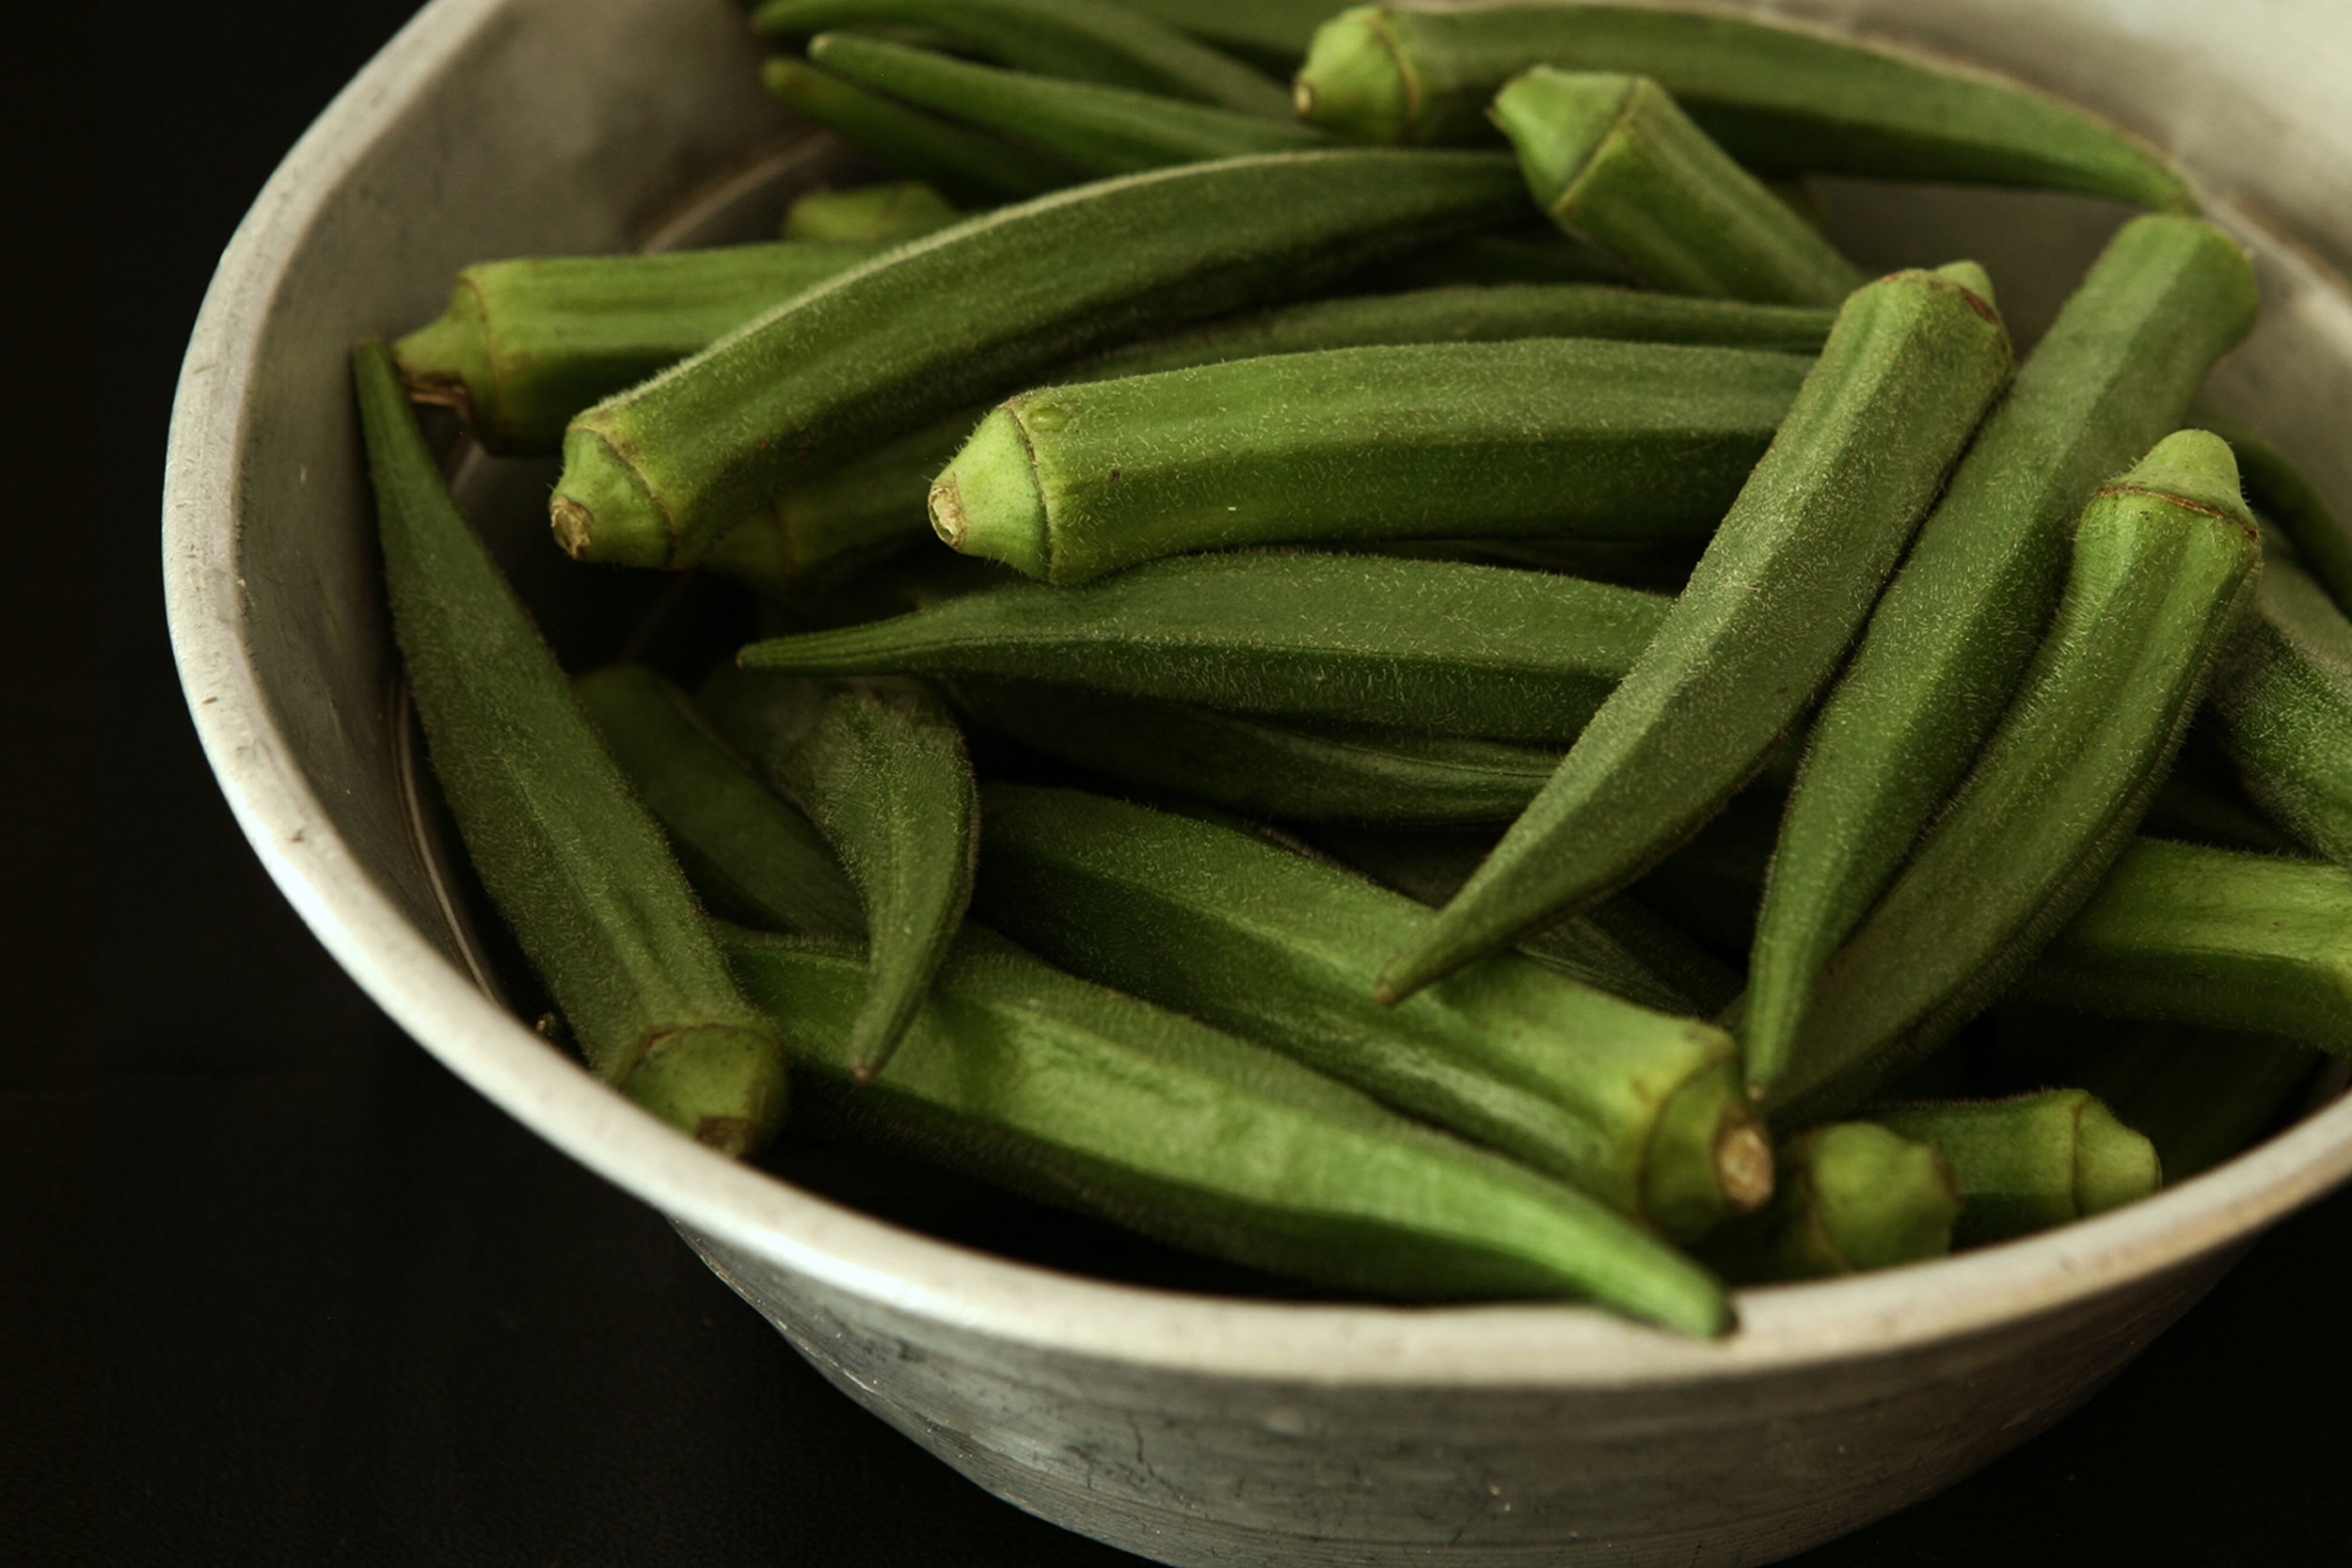 Okra was brought over by the enslaved from Africa, working its way into American medicine and cooking. It was used for all sorts of things, from a way of making an alternative to coffee grounds to a means of trying to induce a miscarriage. When it came to medicine, health and midwifery, the enslaved were generally on their own.